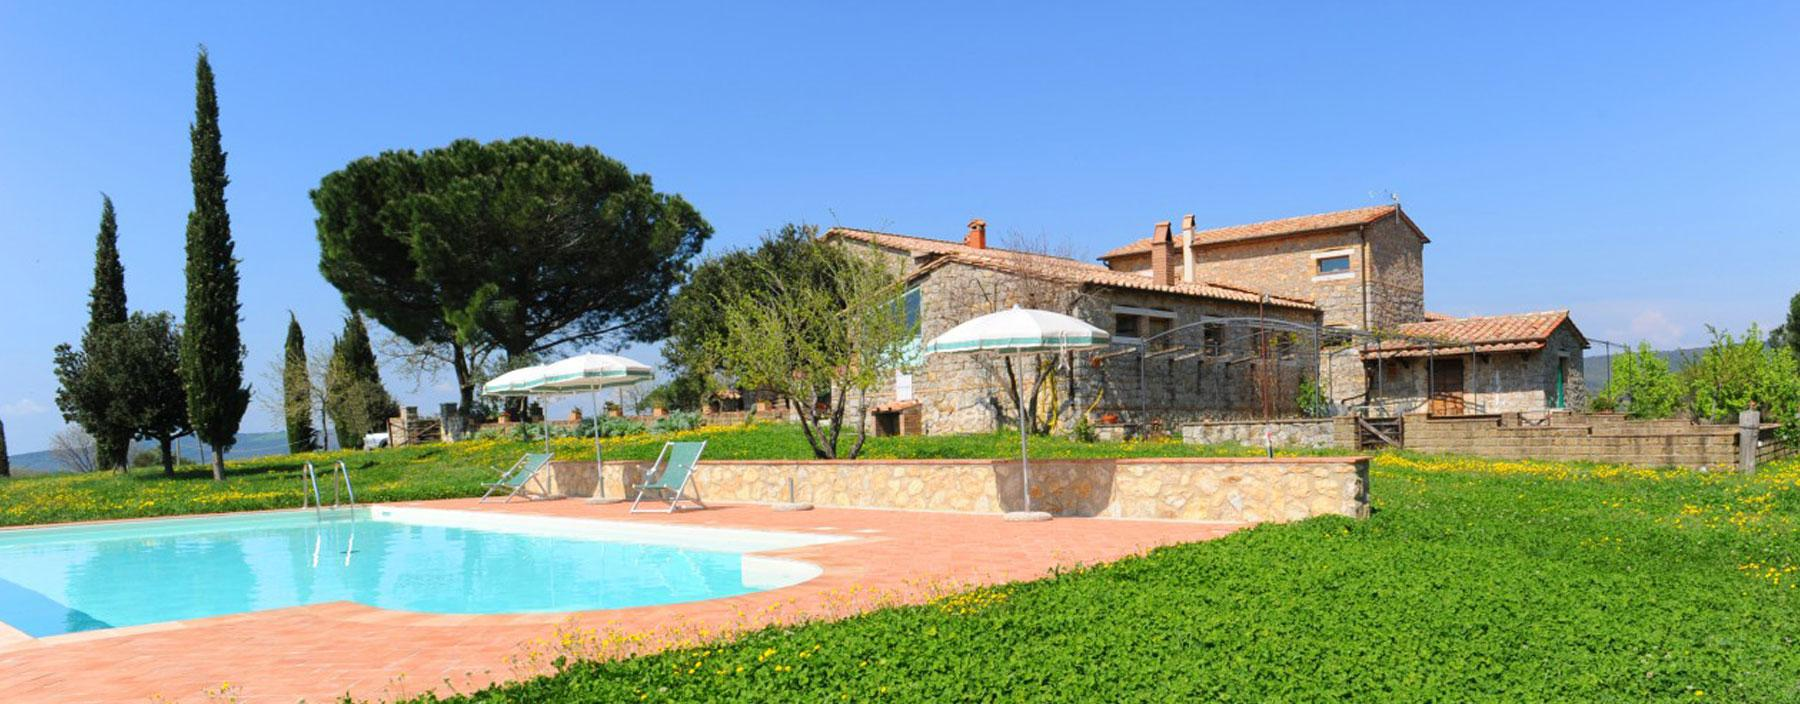 Farmhouse for sale near thermal park with olive grove